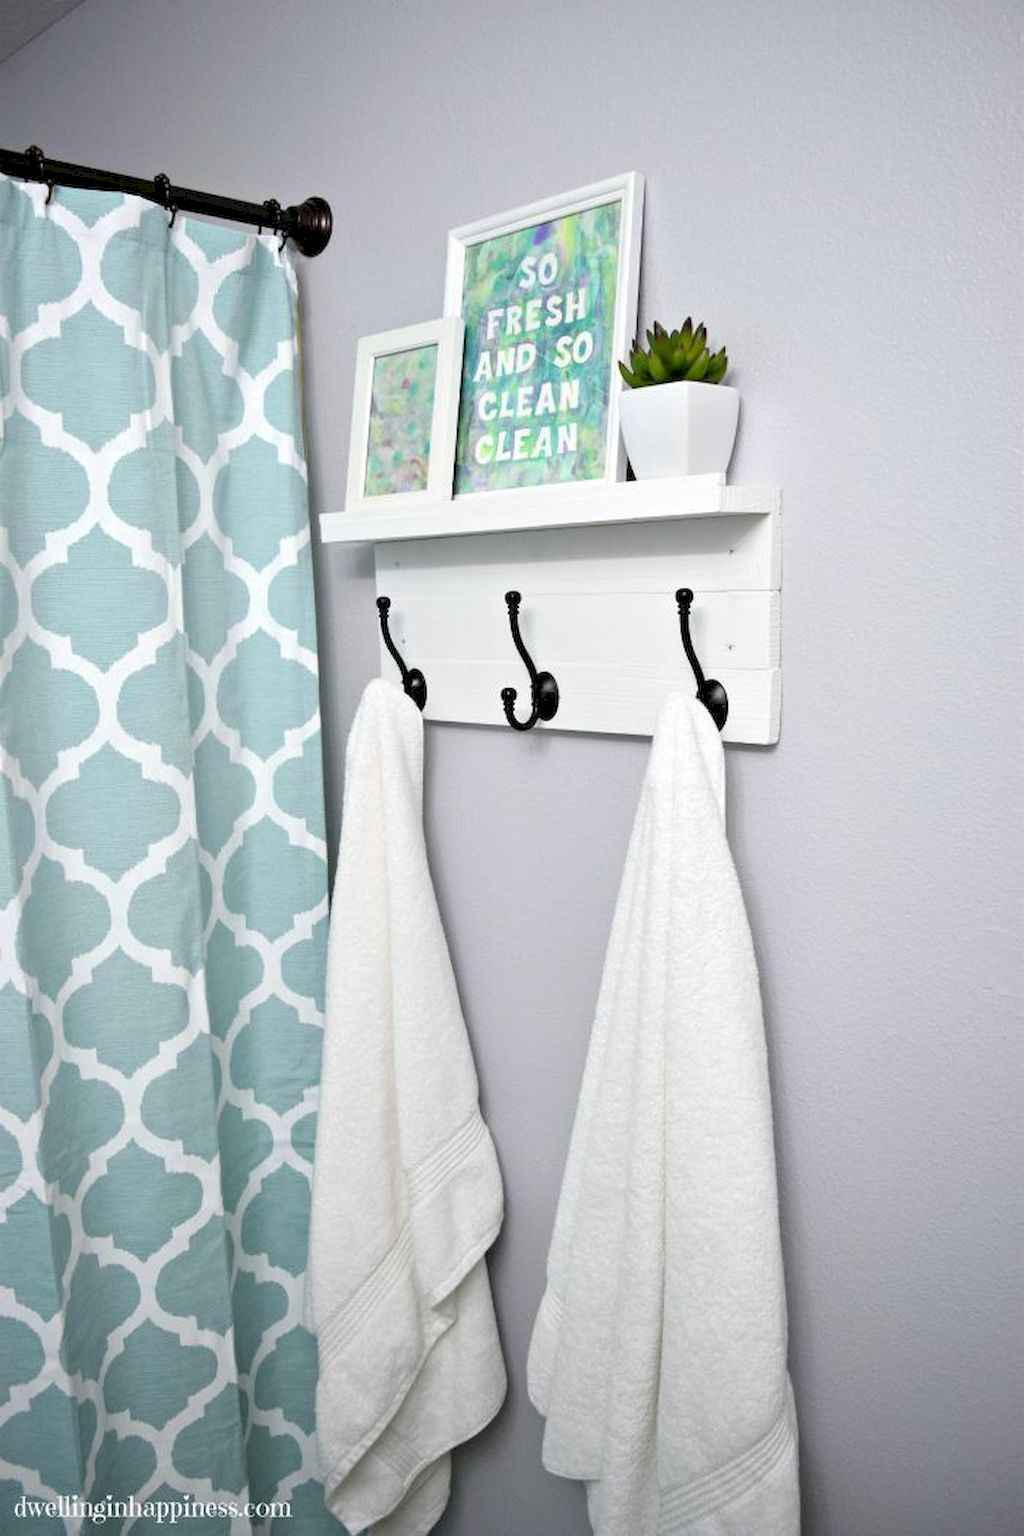 111 awesome small bathroom remodel ideas on a budget (2)